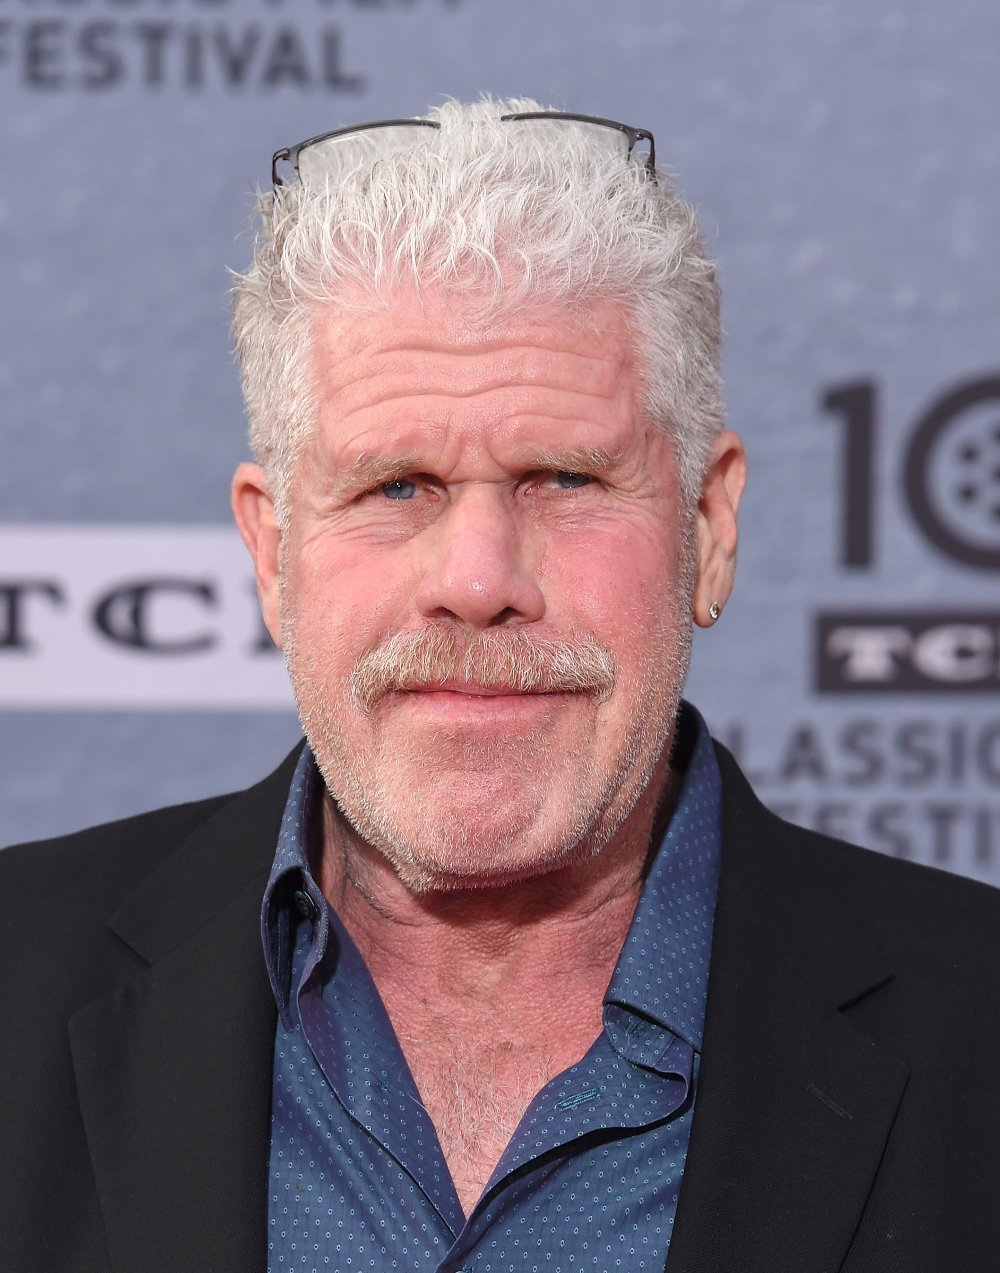 Klikk på bildet for å forstørre. When Harry Met Sally 30th Anniversary Screening - 2019 TCM Classic Film Festival When Harry Met Sally 30th Anniversary Screening - 2019 TCM Classic Film Festival. Ron Perlman attending the 30th anniversary screening of 'When Harry Met Sally' at the 2019 TCM Classic Film Festival opening night gala held at the TCL Chinese Theatre IMAX URN:42284227